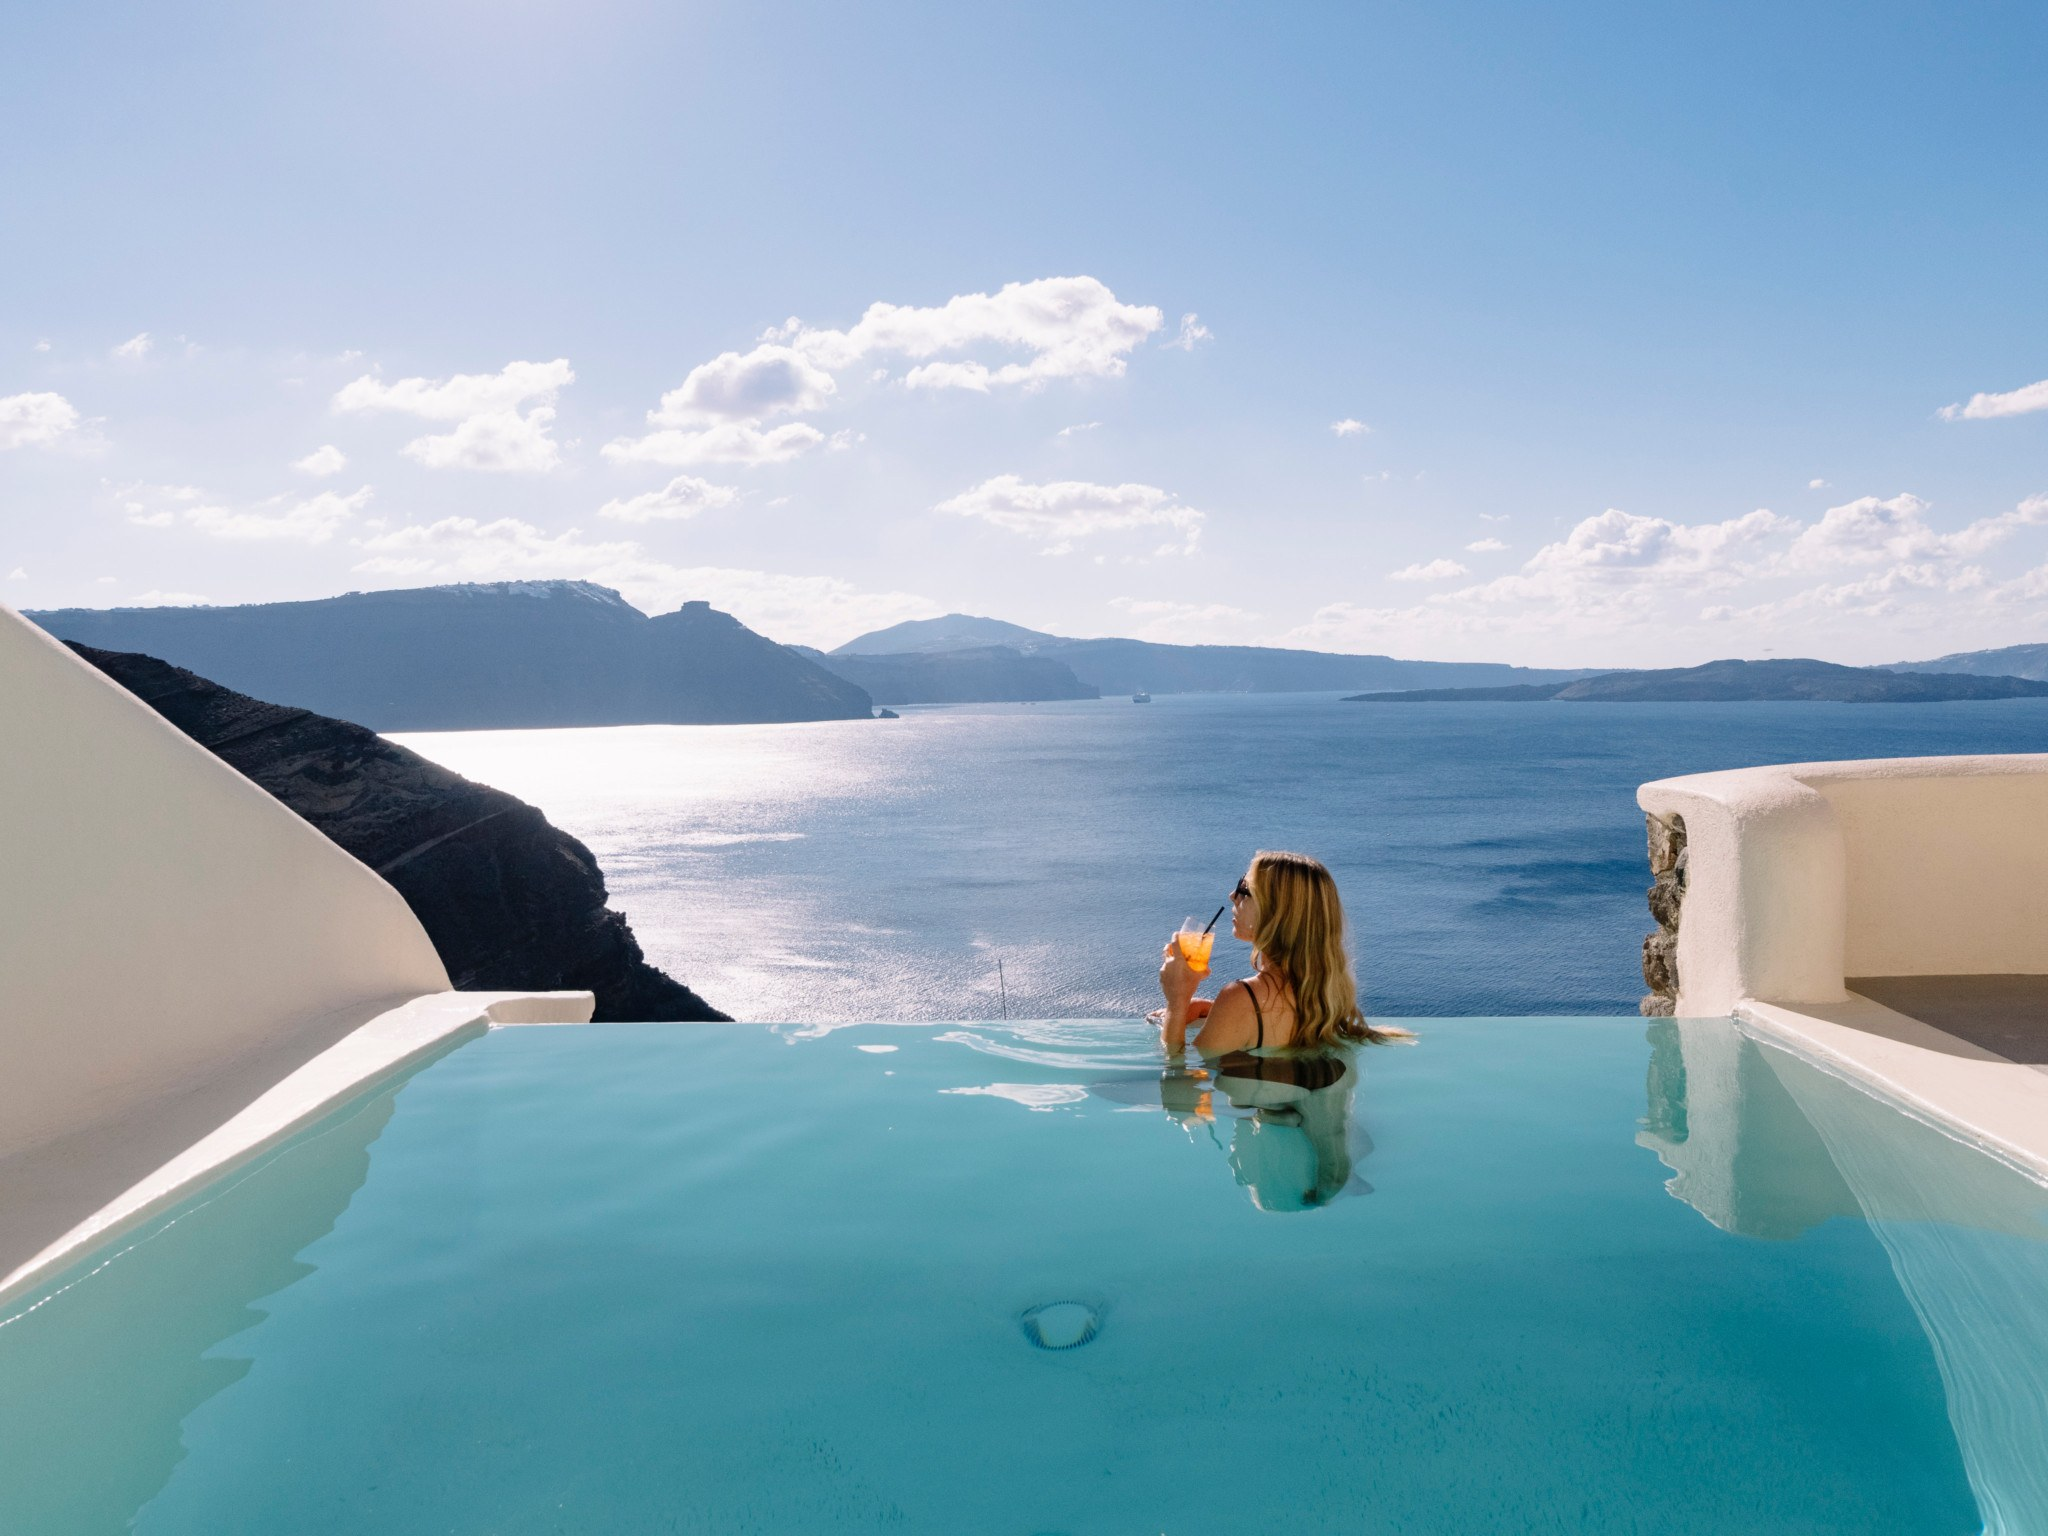 woman sipping drink on infinity pool